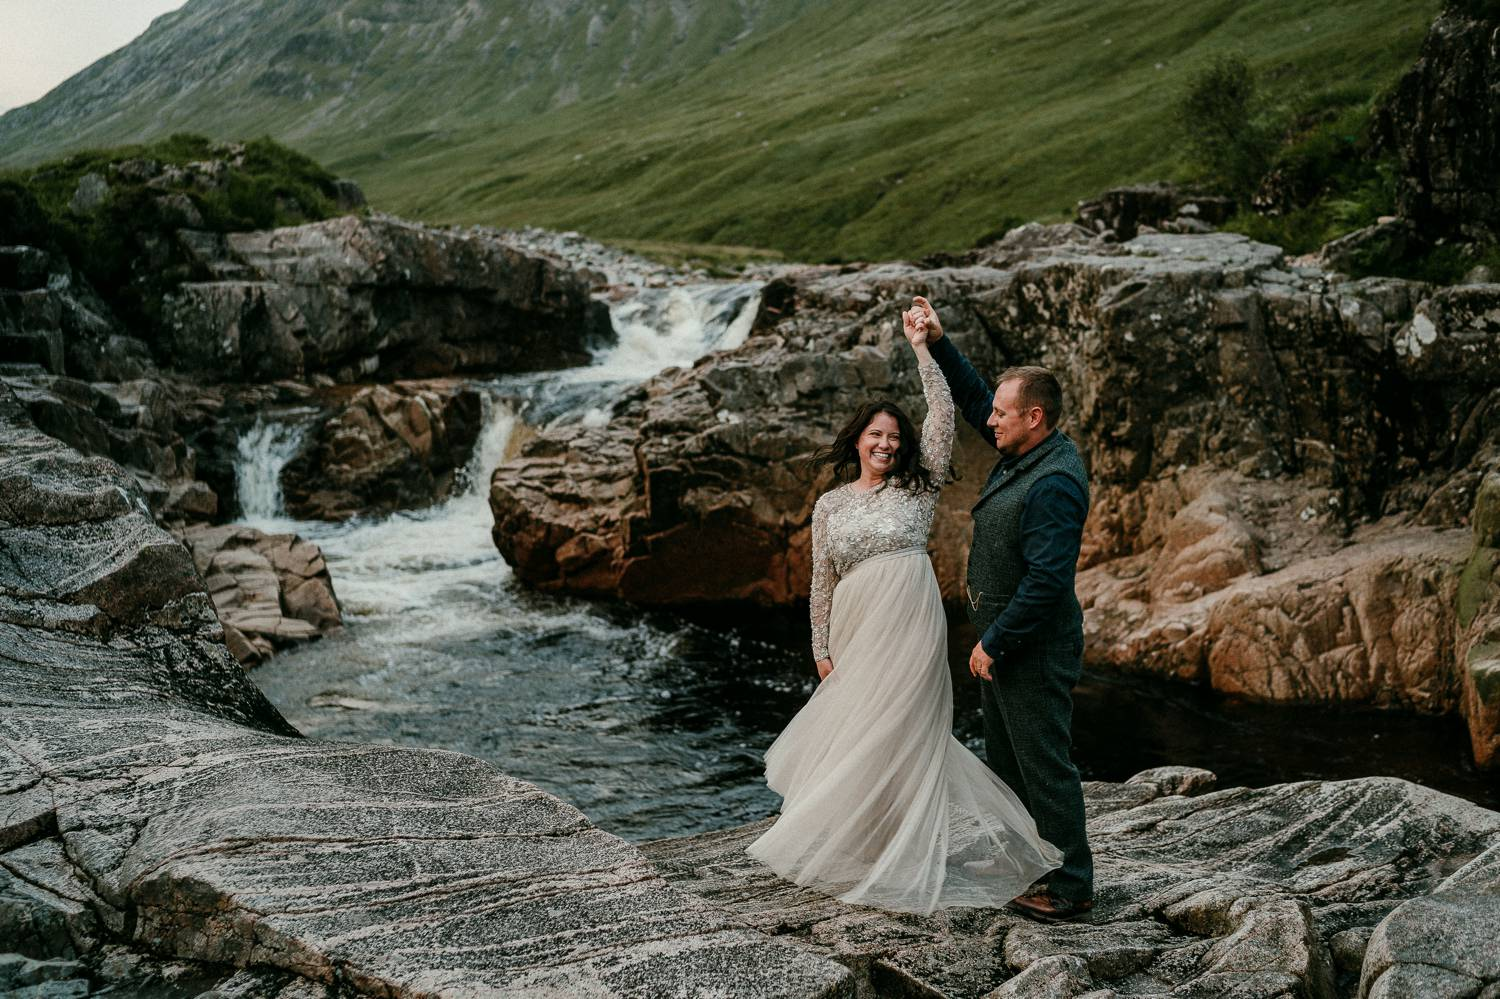 A groom spins his bride in a gentle dance move that sends her skirts twirling. They're standing beside the blue waters of an Irish creek. Photograph by Rob Dight.